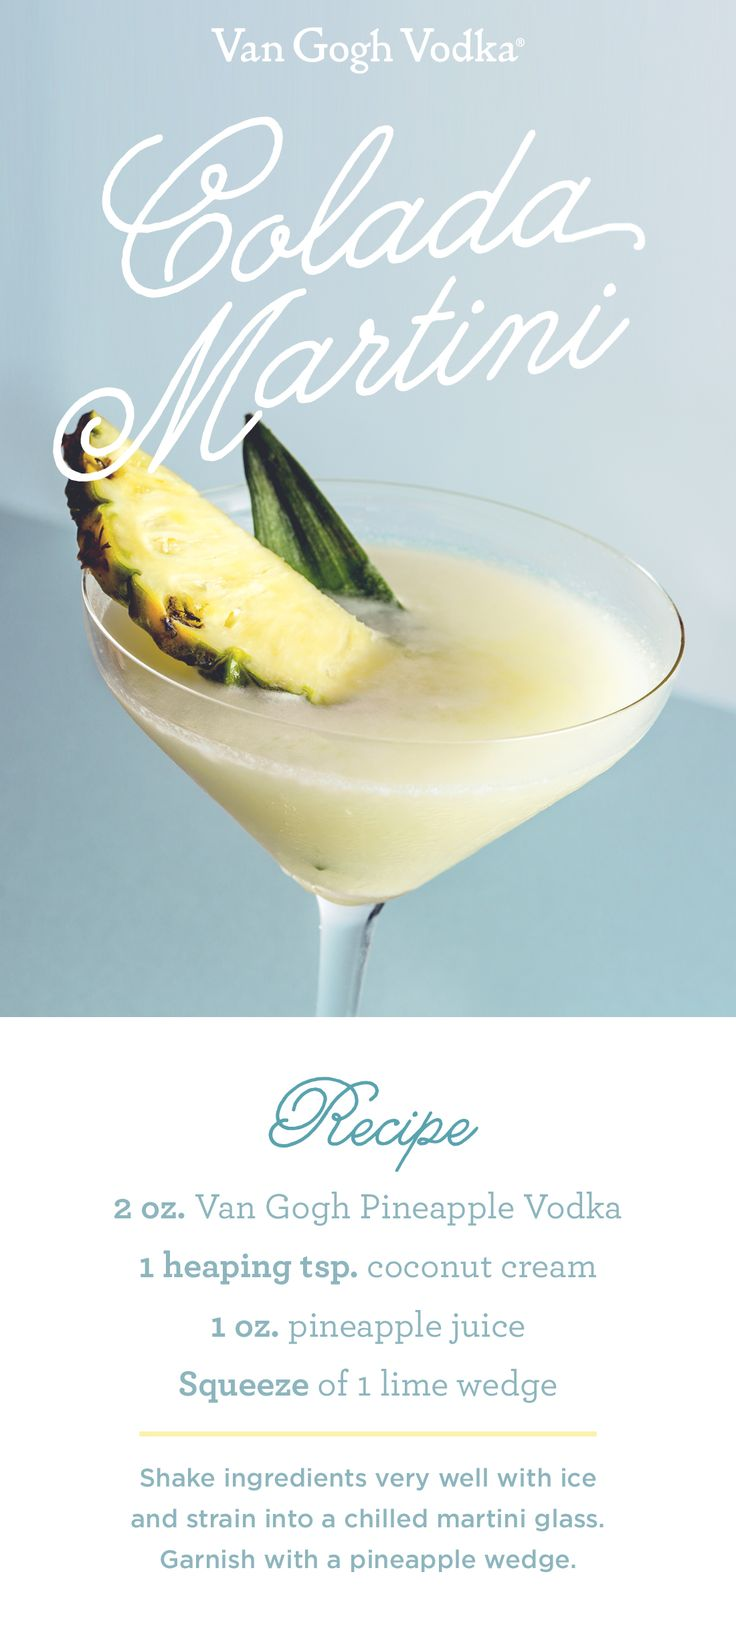 When it comes to summer cocktails, you gotta colada! Spice up your usual piña colada with a splash of Van Gogh Pineapple Vodka. Shake 2 oz. Van Gogh Pineapple Vodka, 1 heaping tsp. coconut cream, 1 oz. pineapple juice and 1 lime wedge, squeezed very well with ice and strain into a chilled martini glass. Garnish with a pineapple wedge and enjoy!